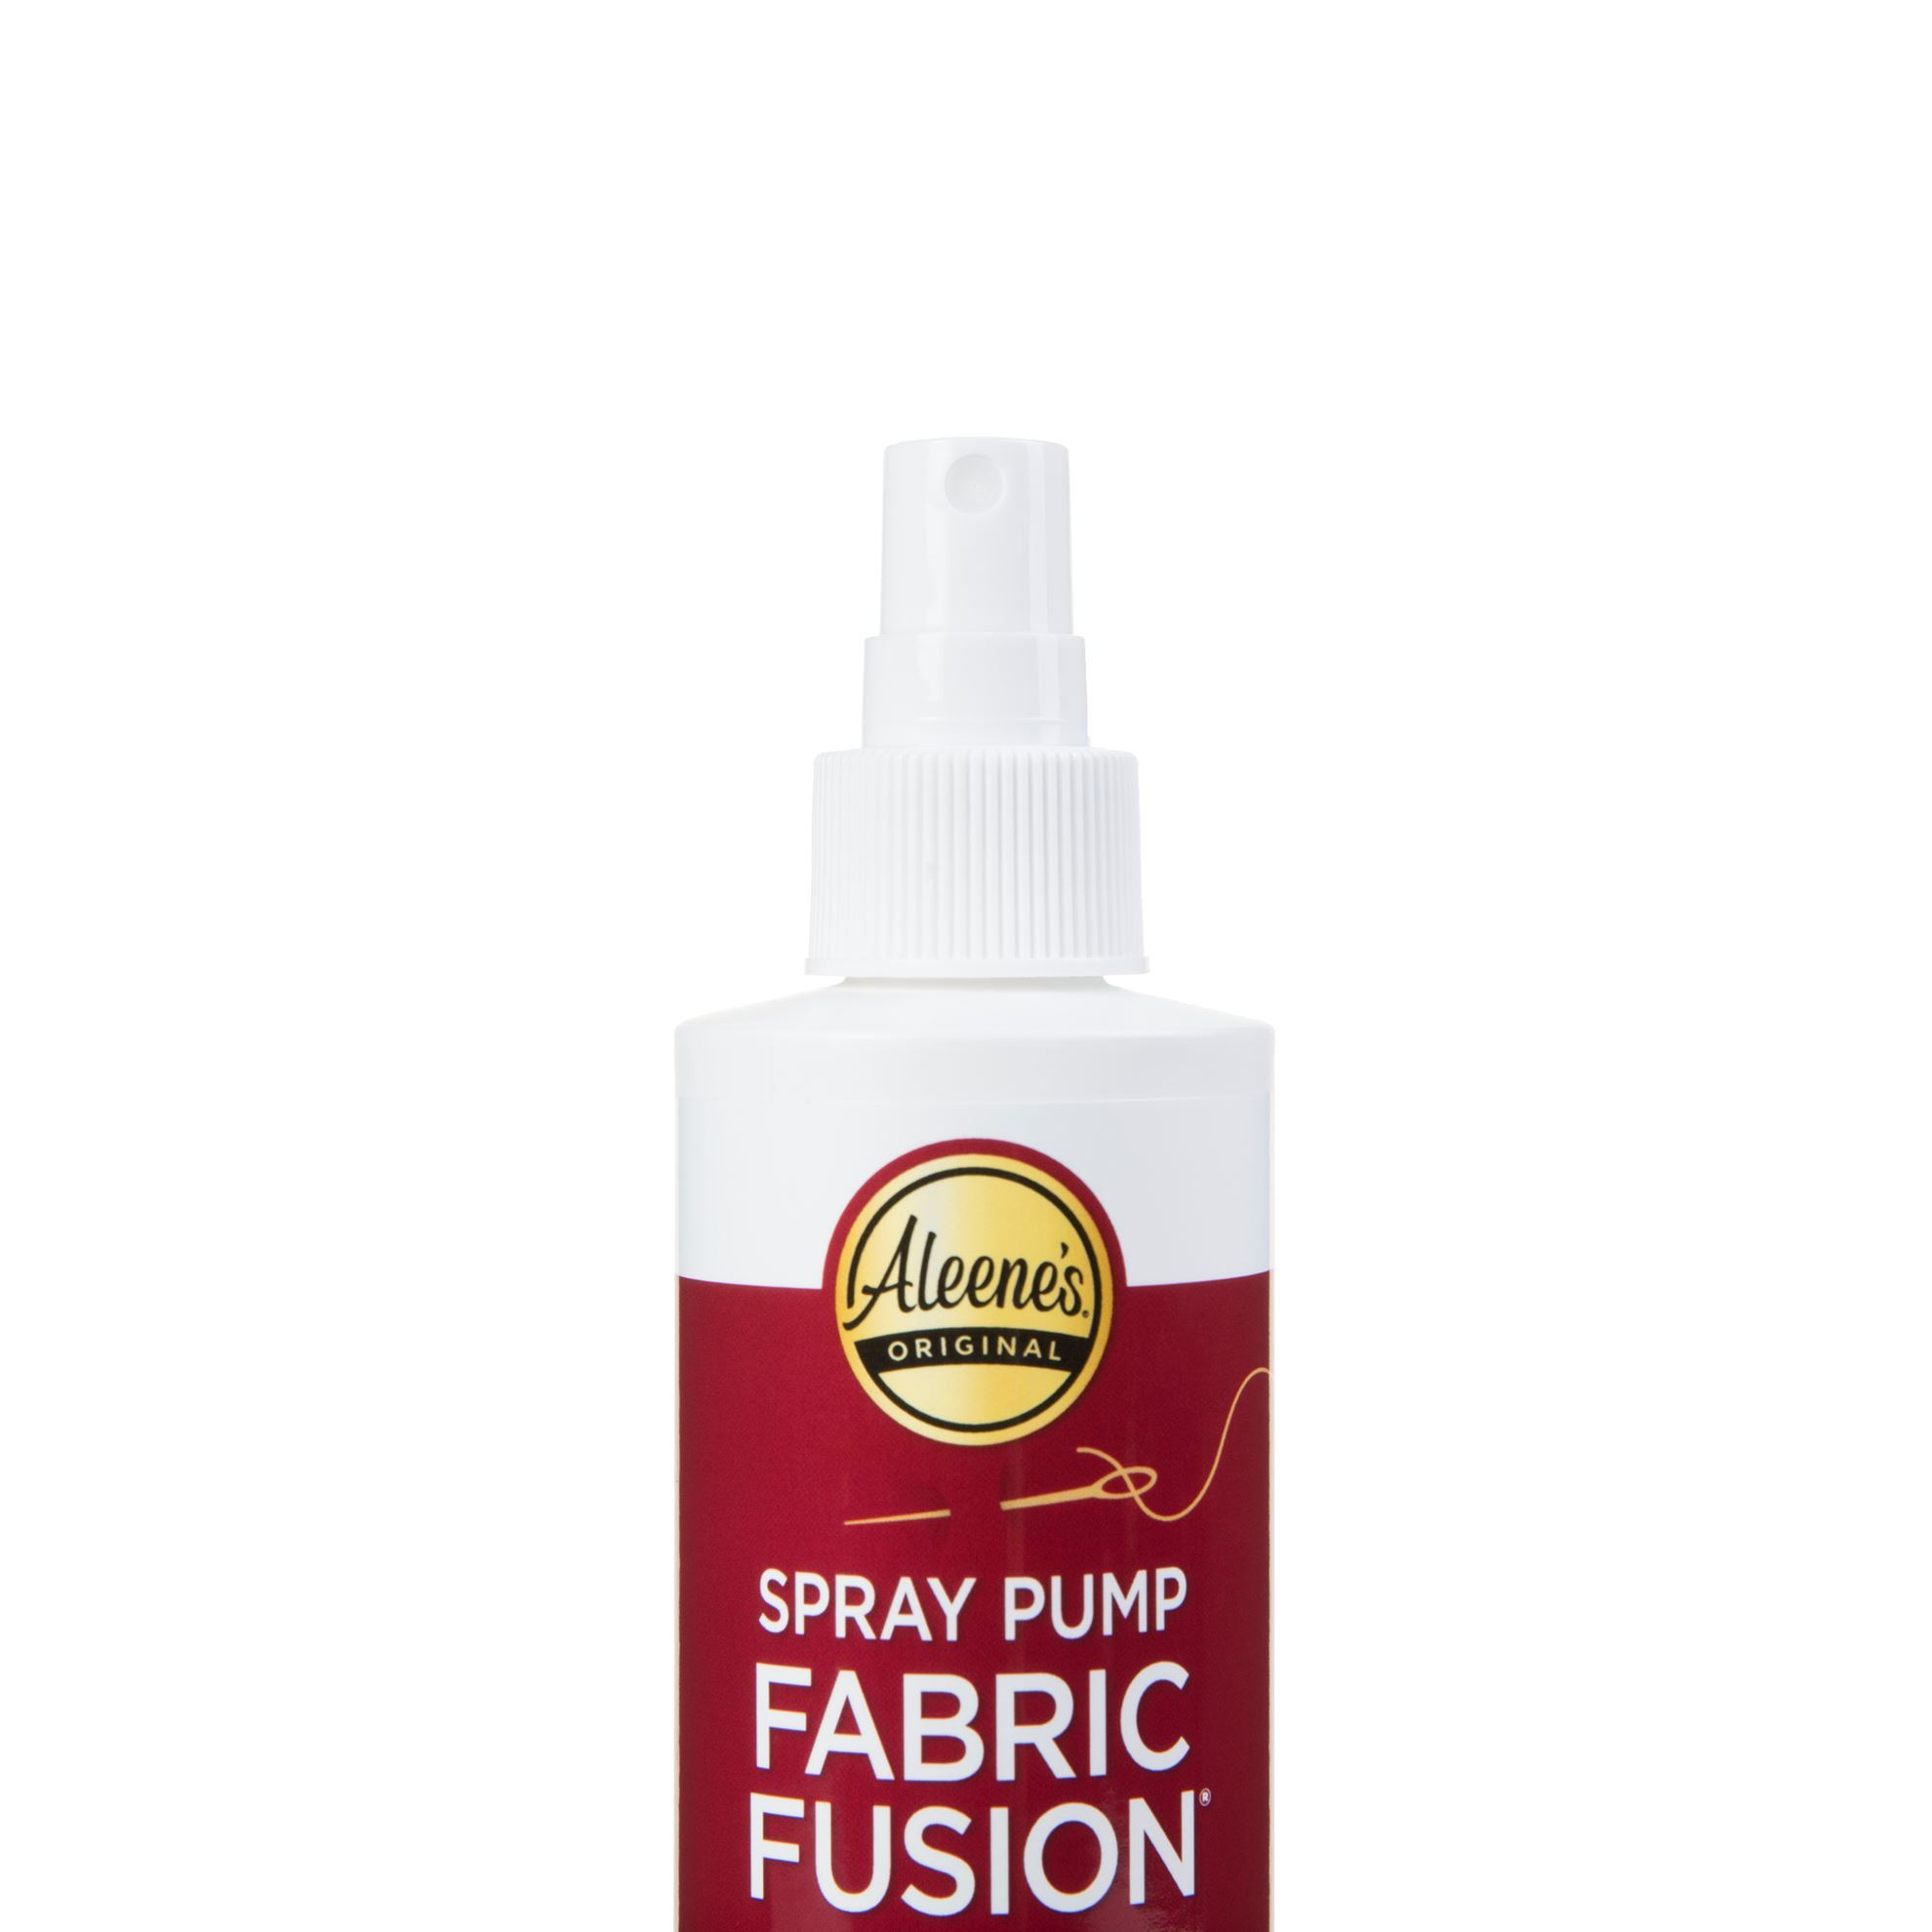 Fabric Fusion Spray Nozzle